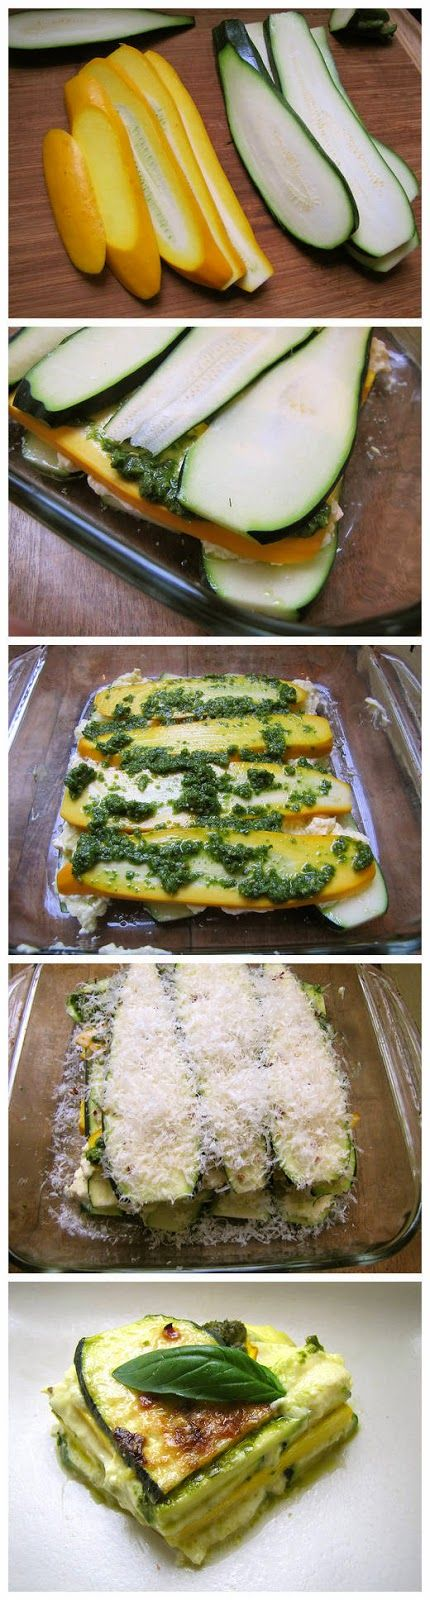 zucchini and summer squash lasagna, made with ricotta and pesto. this version is grain-free, SCD-friendly, and vegetarian.    Ingredients   ...